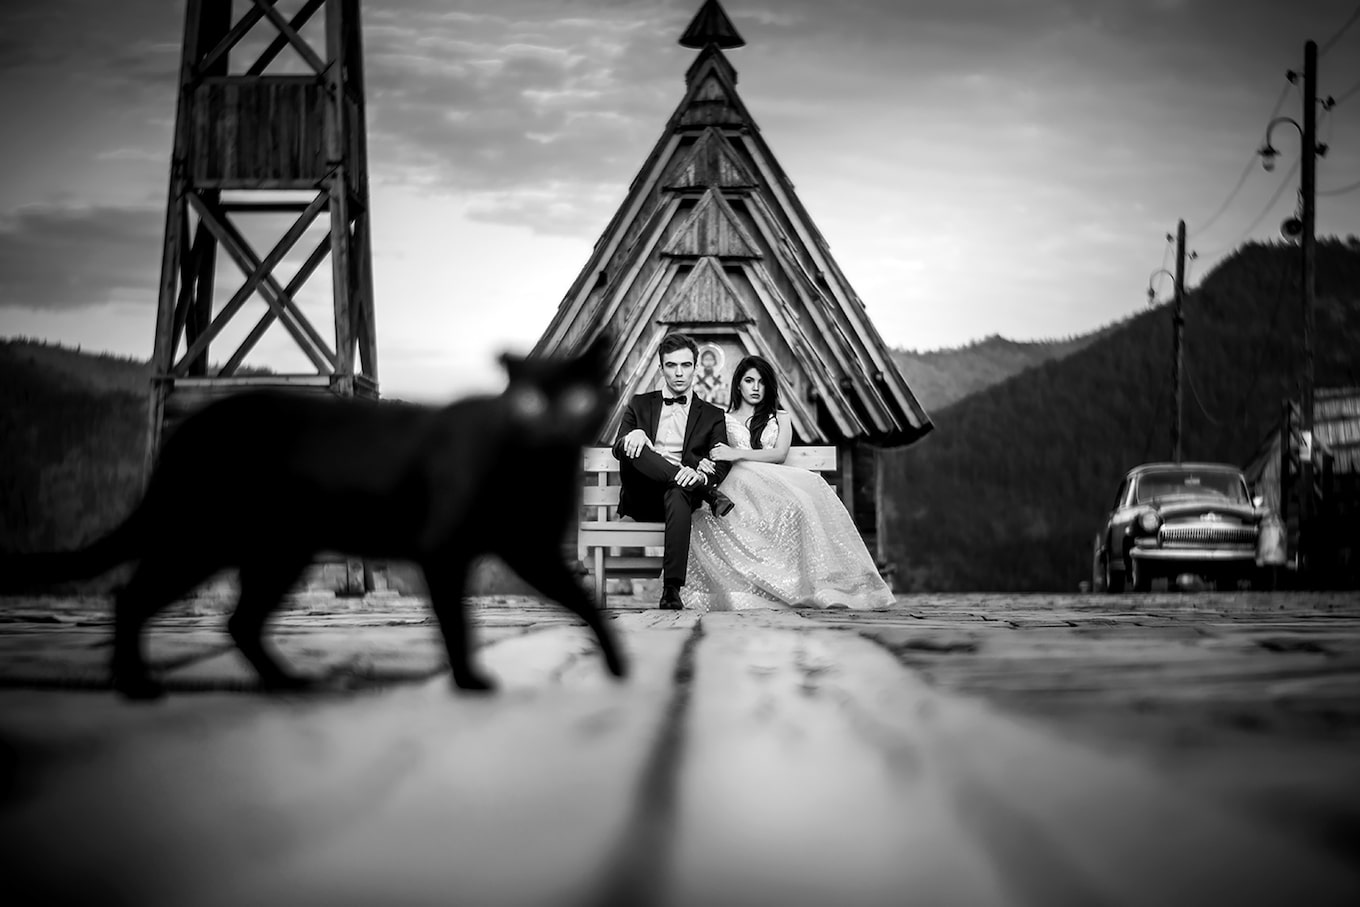 cristiano-ostinelli-sony-alpha-7RIII-bride-and-groom-seated-as-a-black-cat-walks-across-the-frame